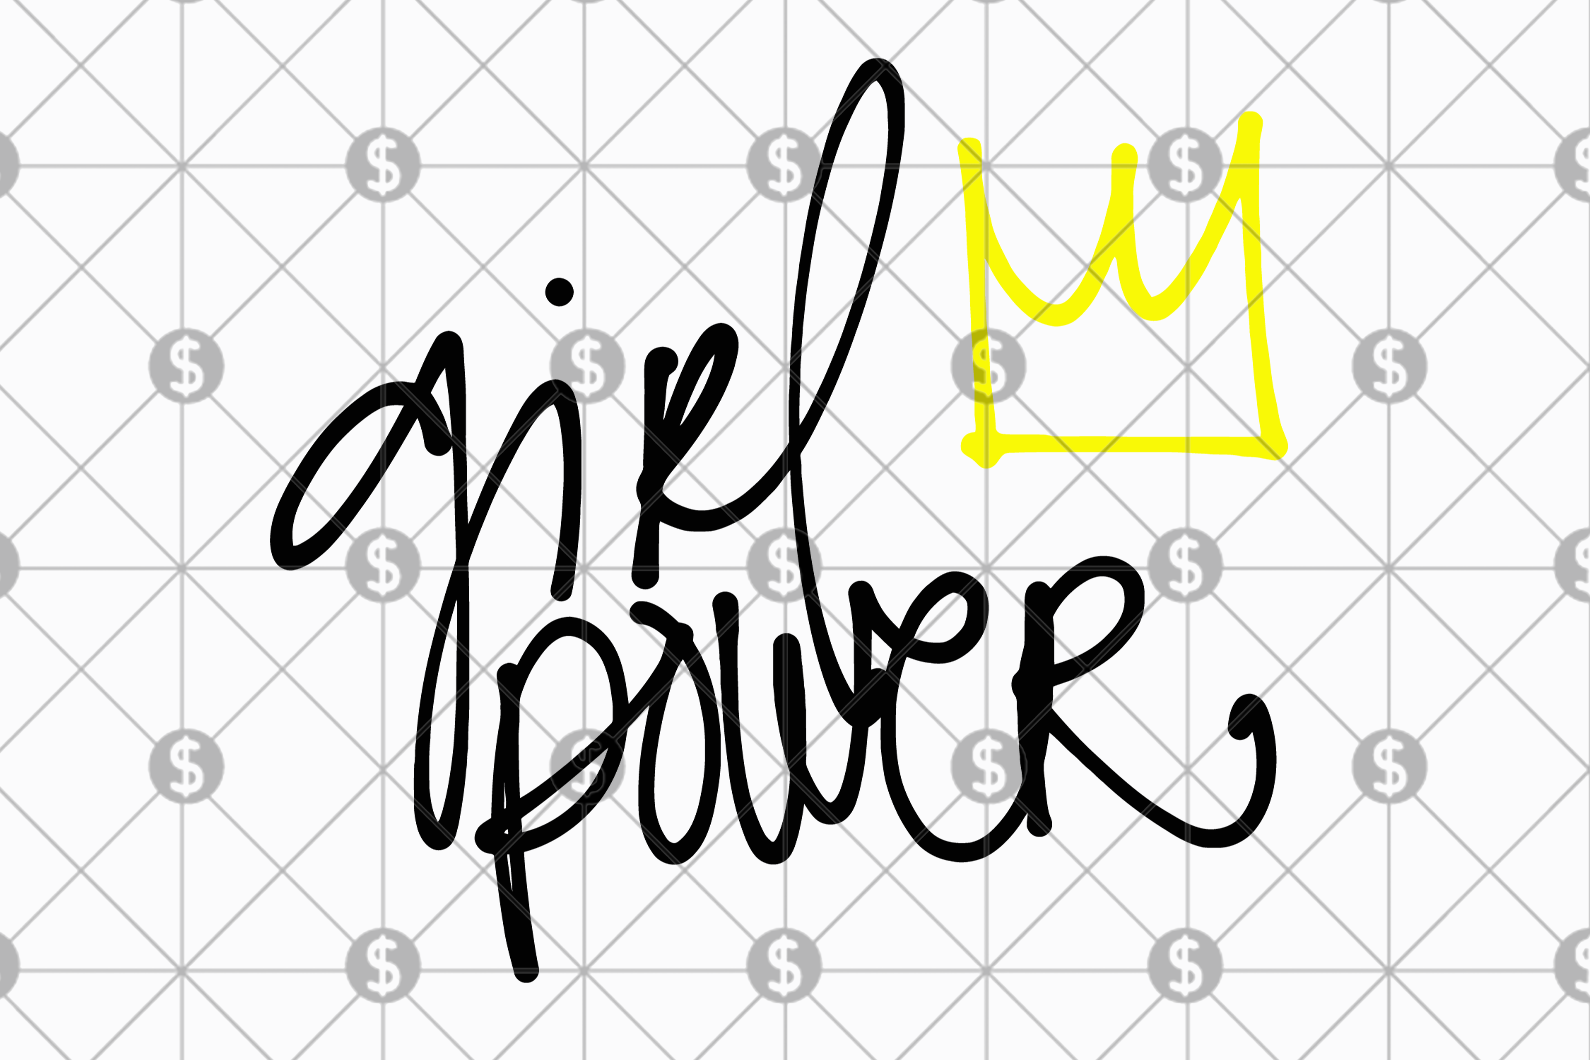 Girl power feminist svg,Girl power svg, Girl power t shirt, Girl power tee, girl svg, Girl power shirt, feminist svg, feminist af, feminist shirt, feminist art,feminist gift, feminist poster, the future is female, svg files, svg files for cricut